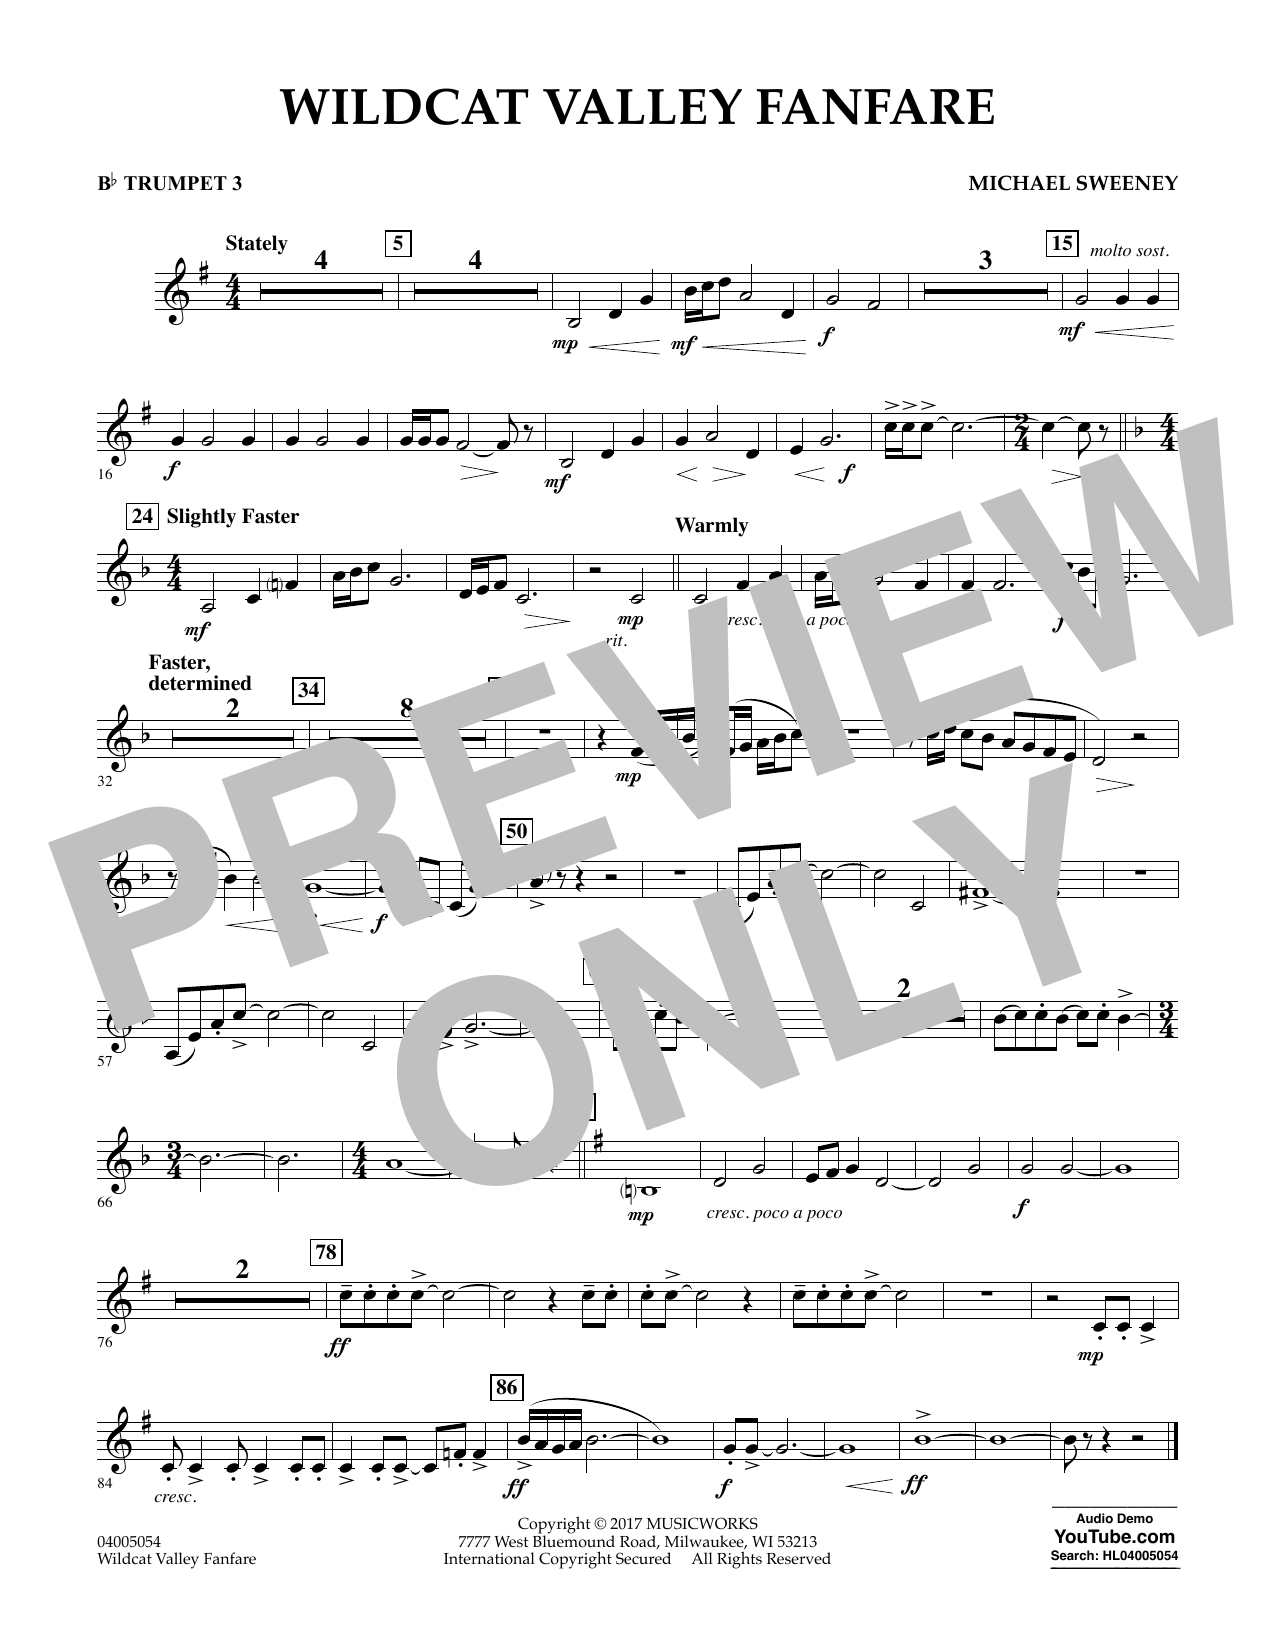 Michael Sweeney Wildcat Valley Fanfare - Bb Trumpet 3 sheet music notes and chords. Download Printable PDF.